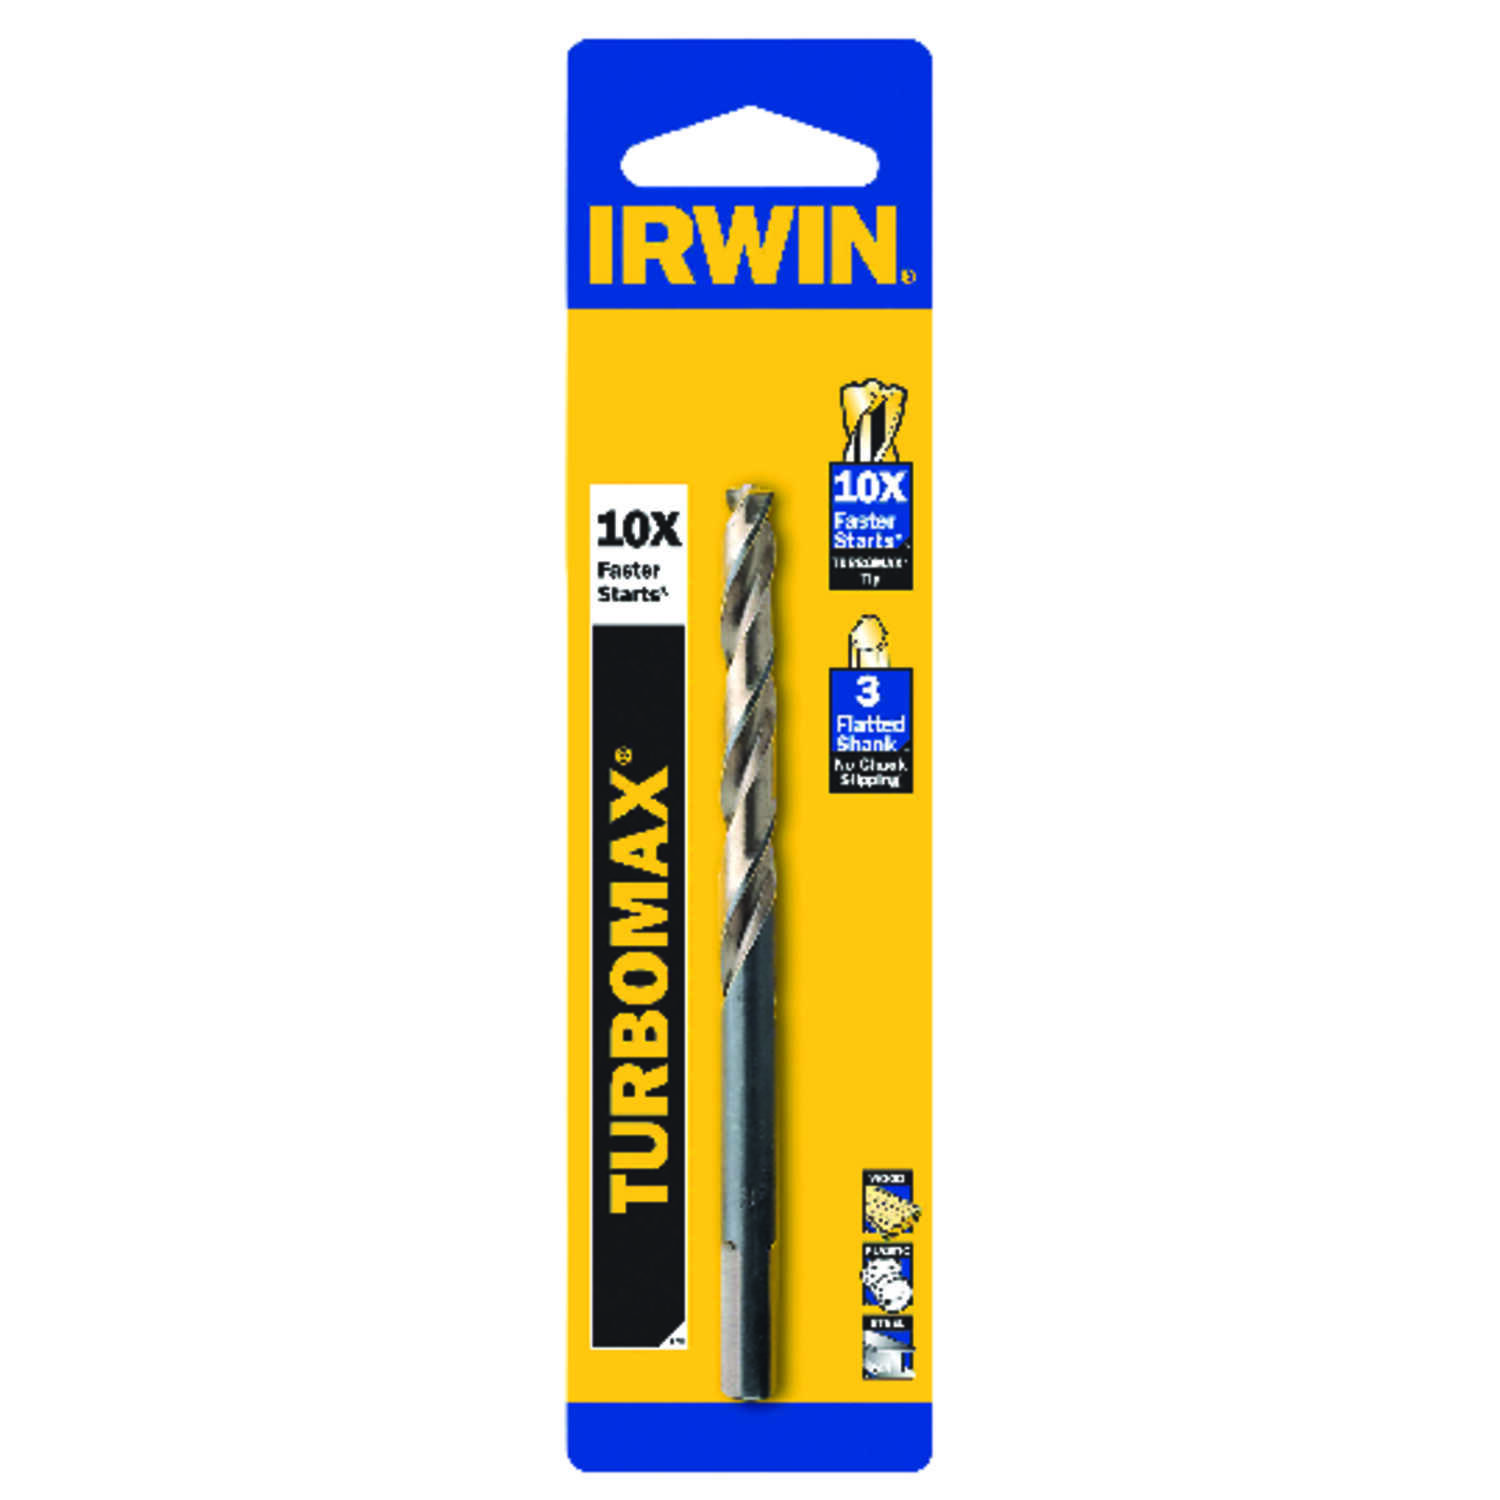 Irwin  Turbomax  15/32 in. Dia. x 5-3/4  L High Speed Steel  Drill Bit Set  3/8 in. Straight Shank